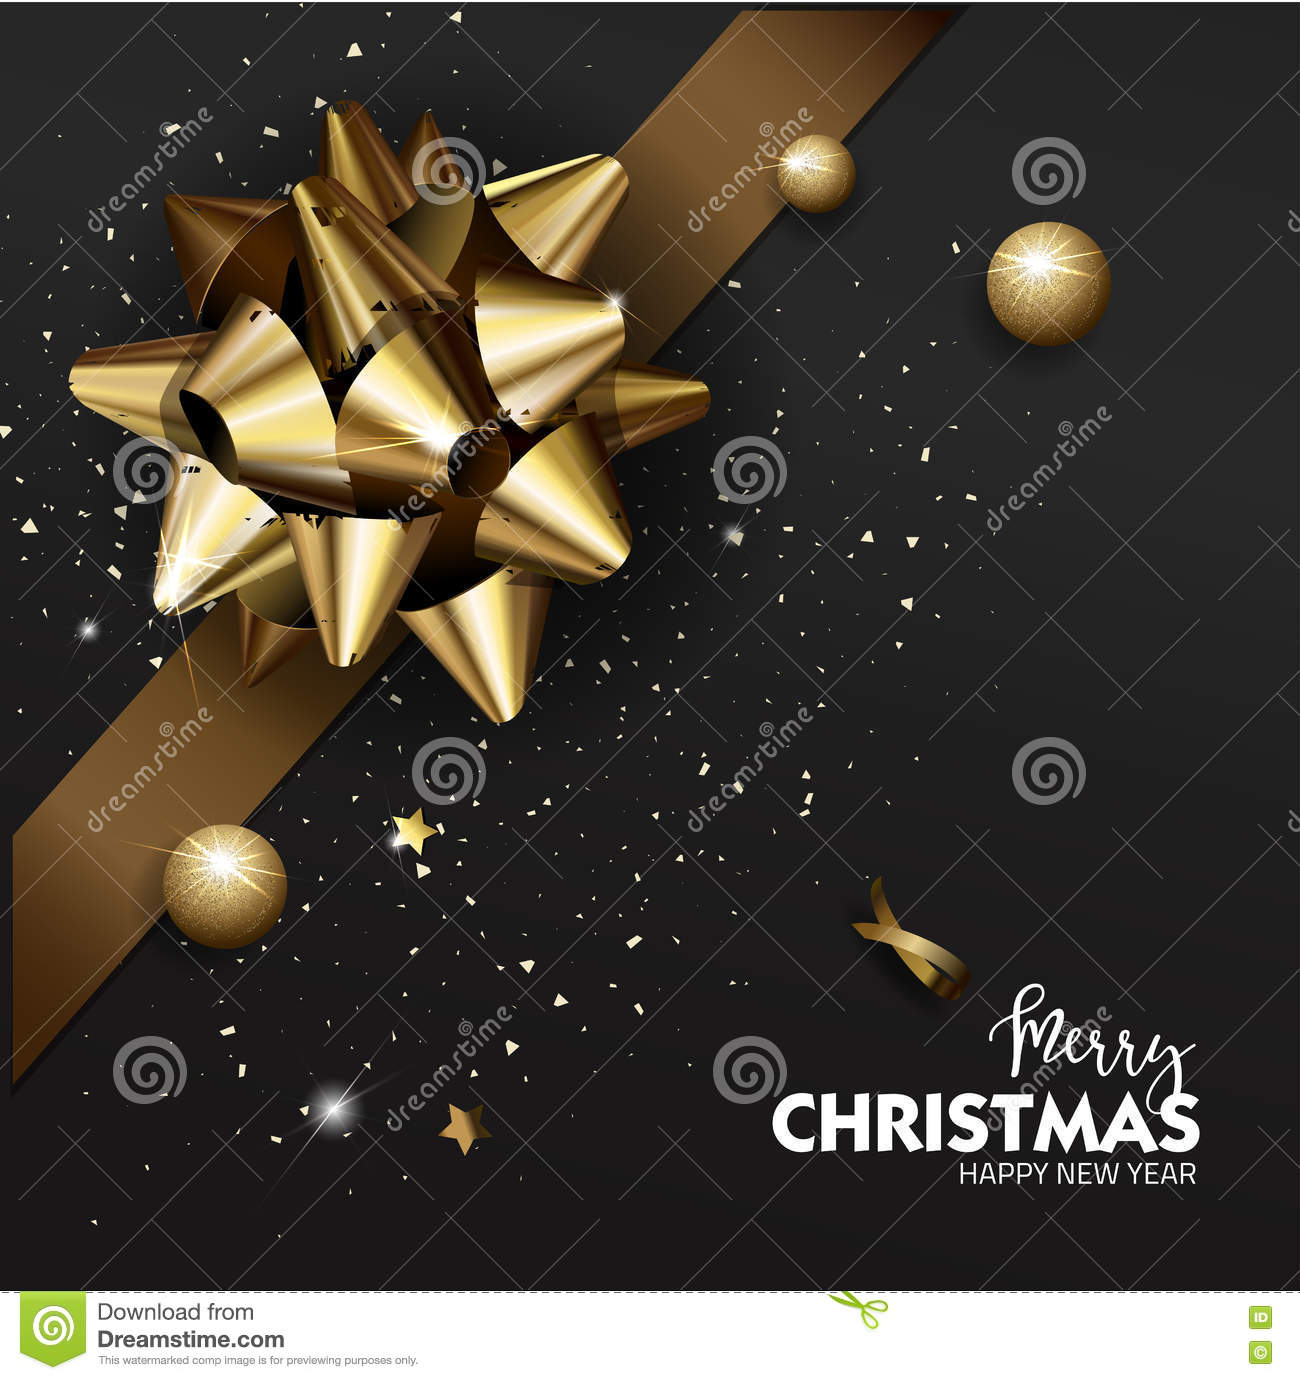 elegant merry christmas or happy new year background with gold bow